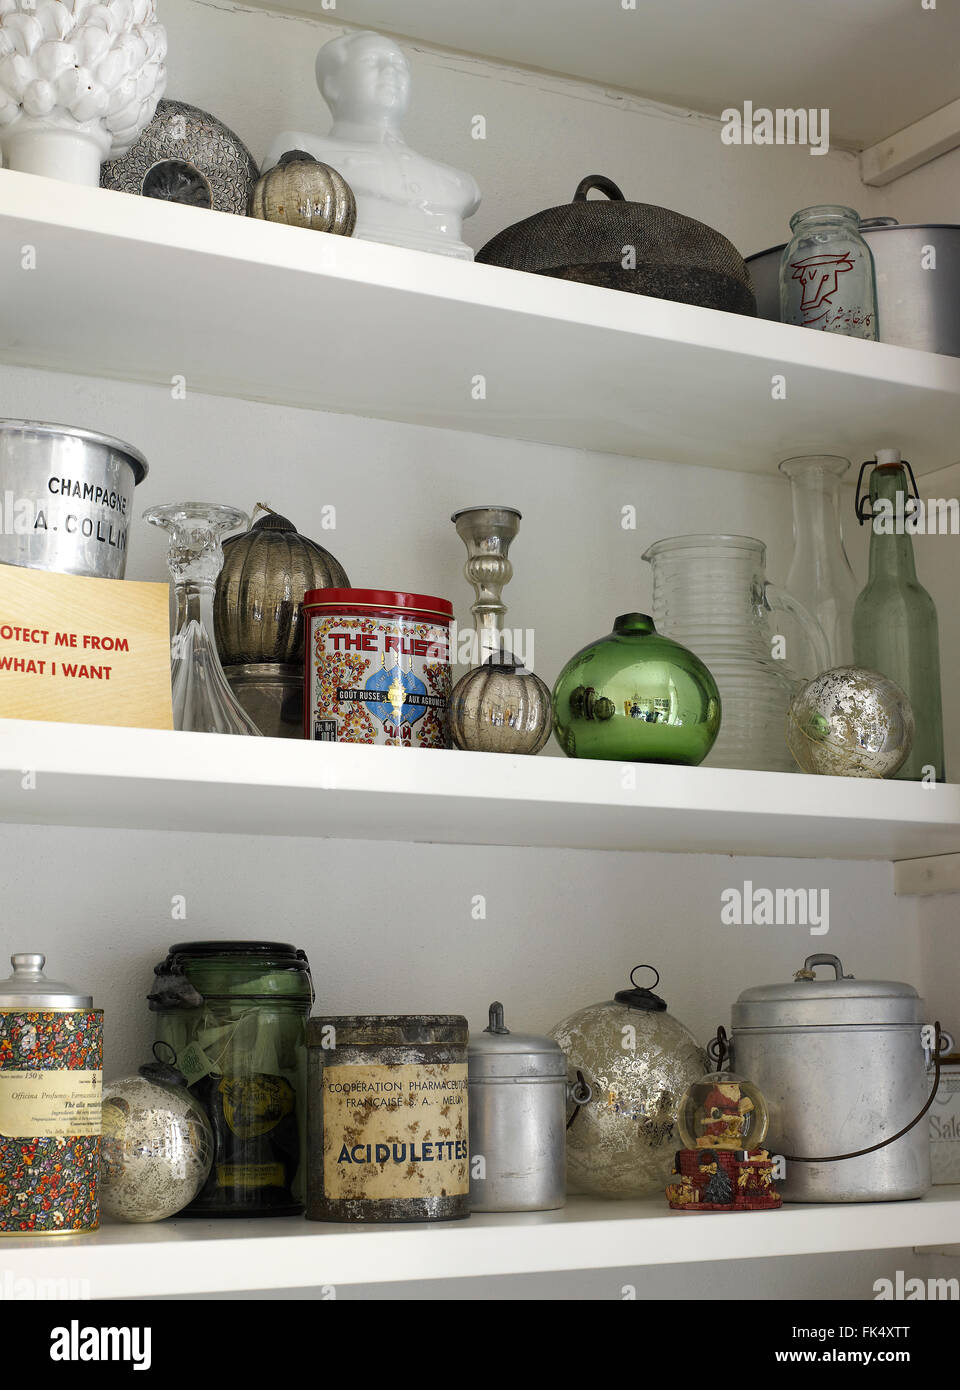 Home Decoration for Christmas, shelves of a cupboard decorated with objects, fruit, , bottles, cans. tins, - Stock Image